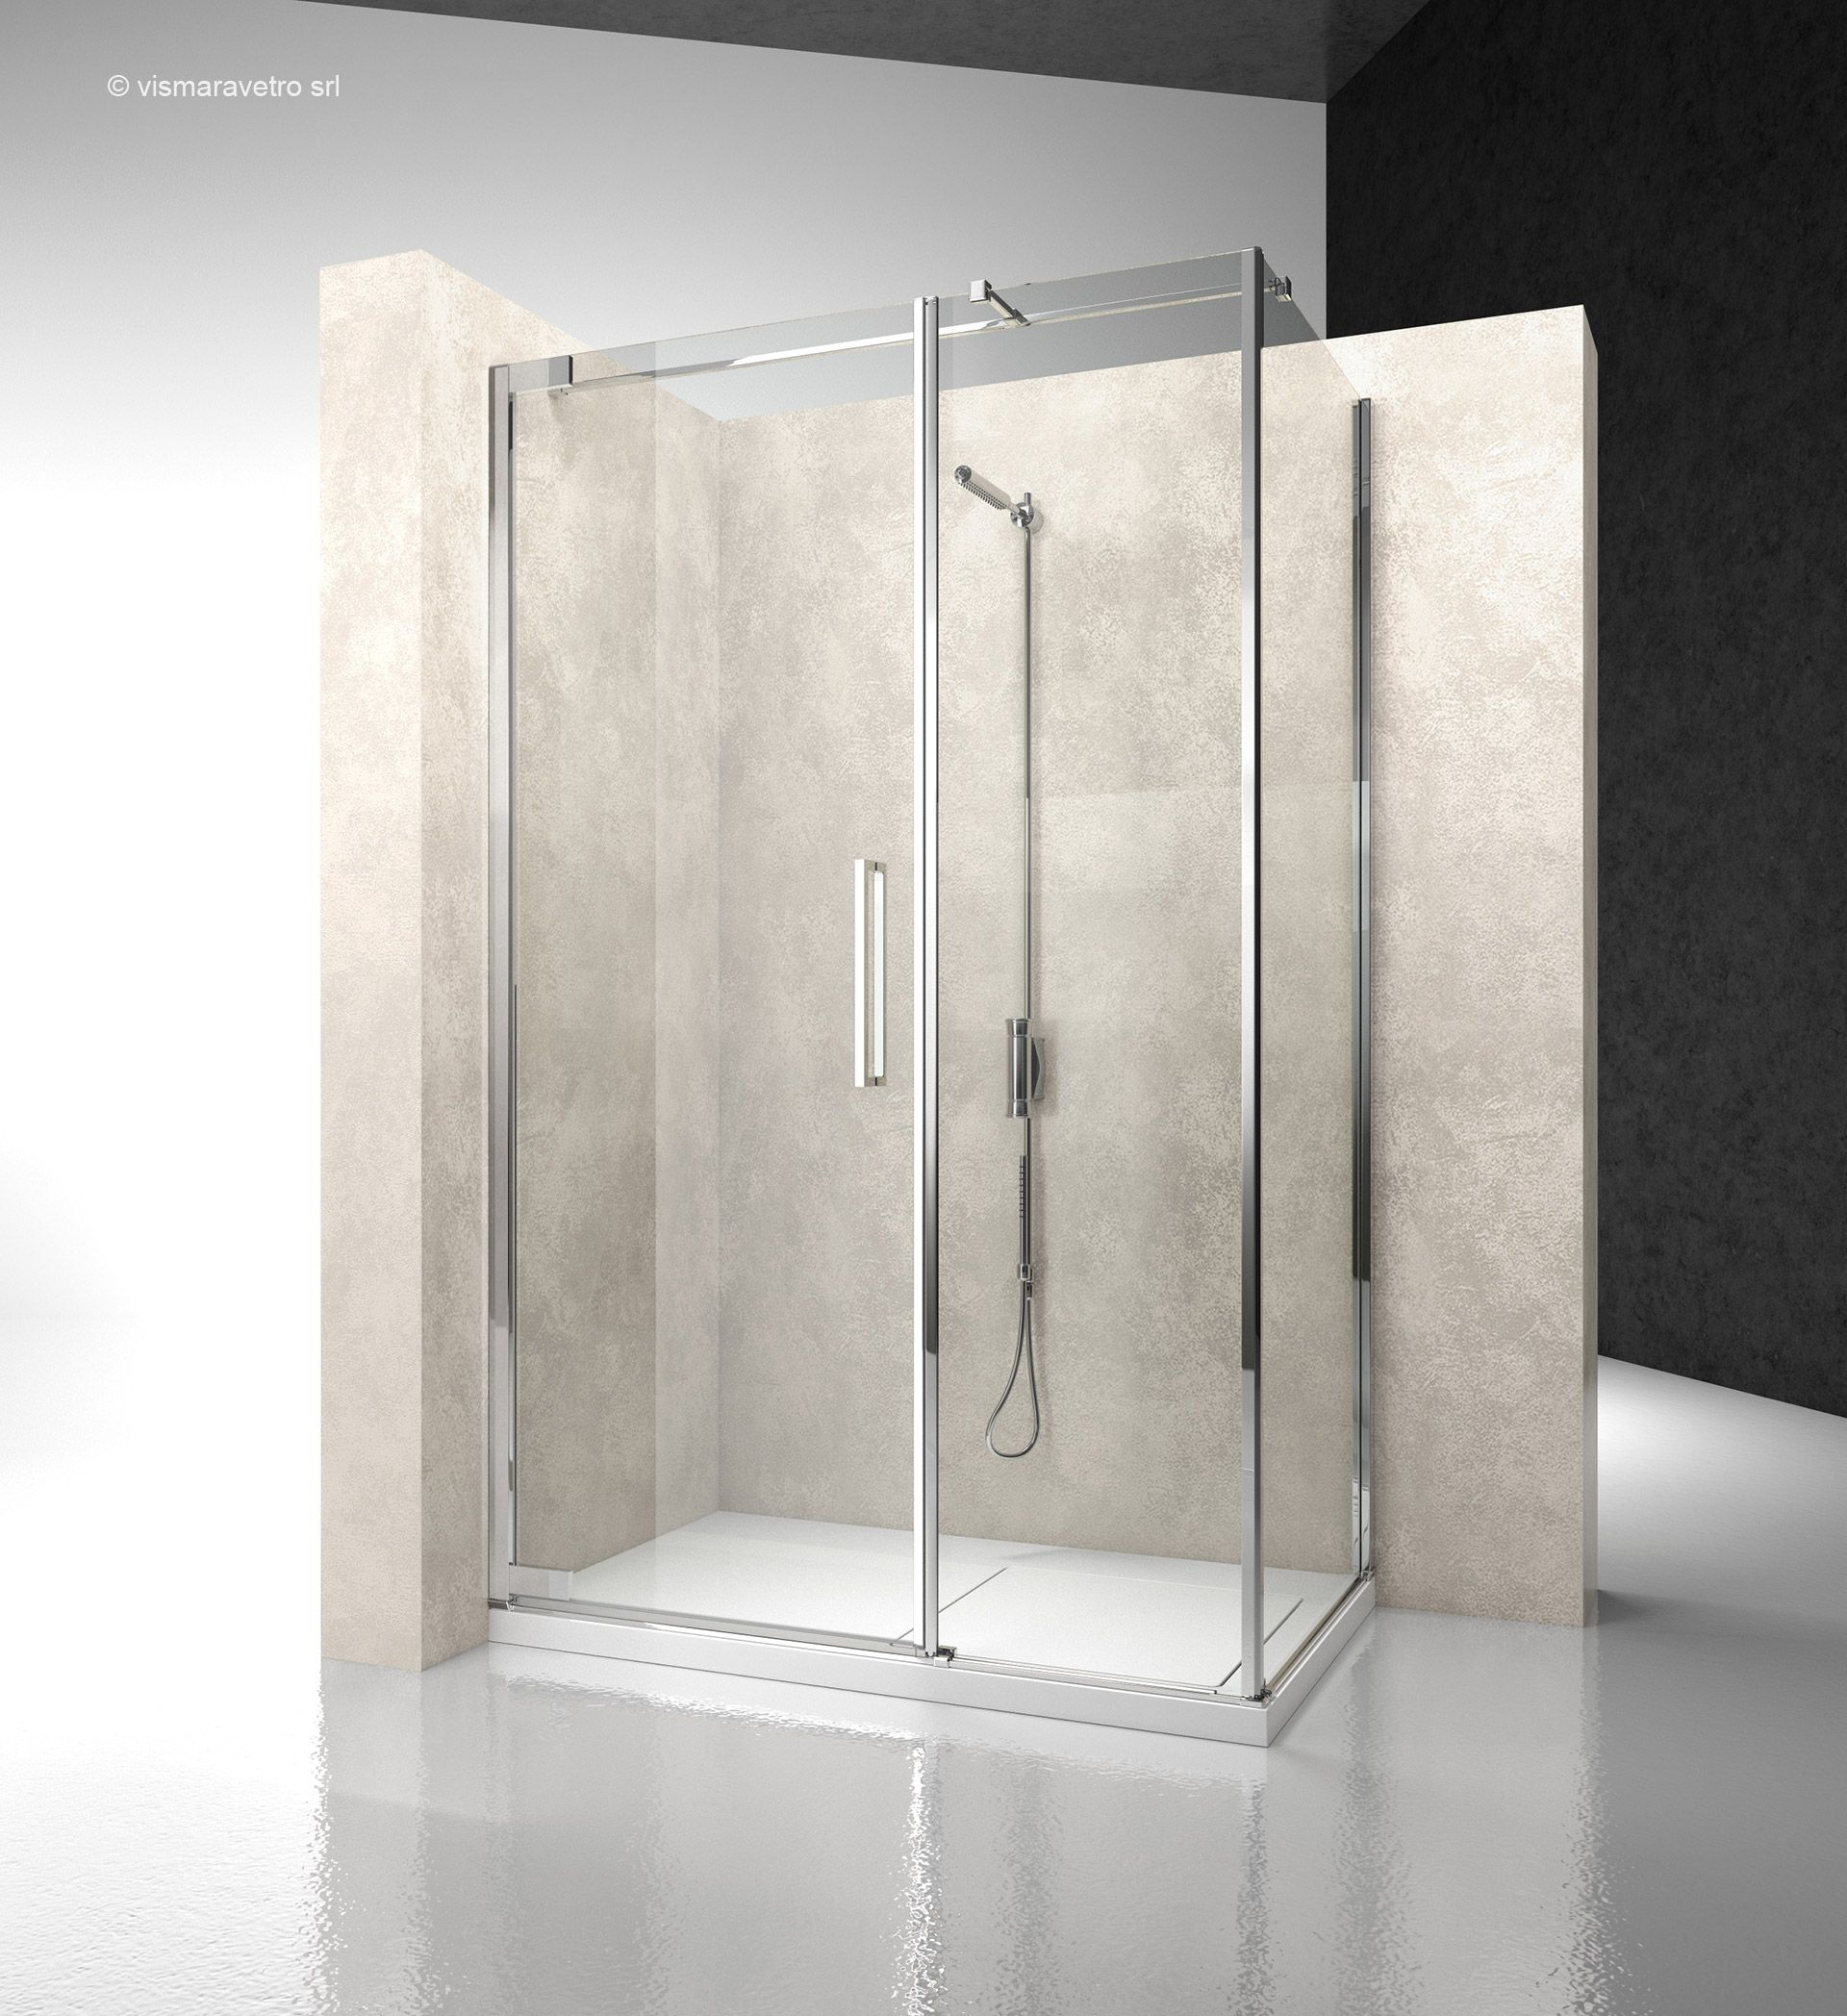 Flare The Pivot Door Shower Enclosure By Vismaravetro Shower Enclosure Frameless Shower Enclosures Bathroom Solutions